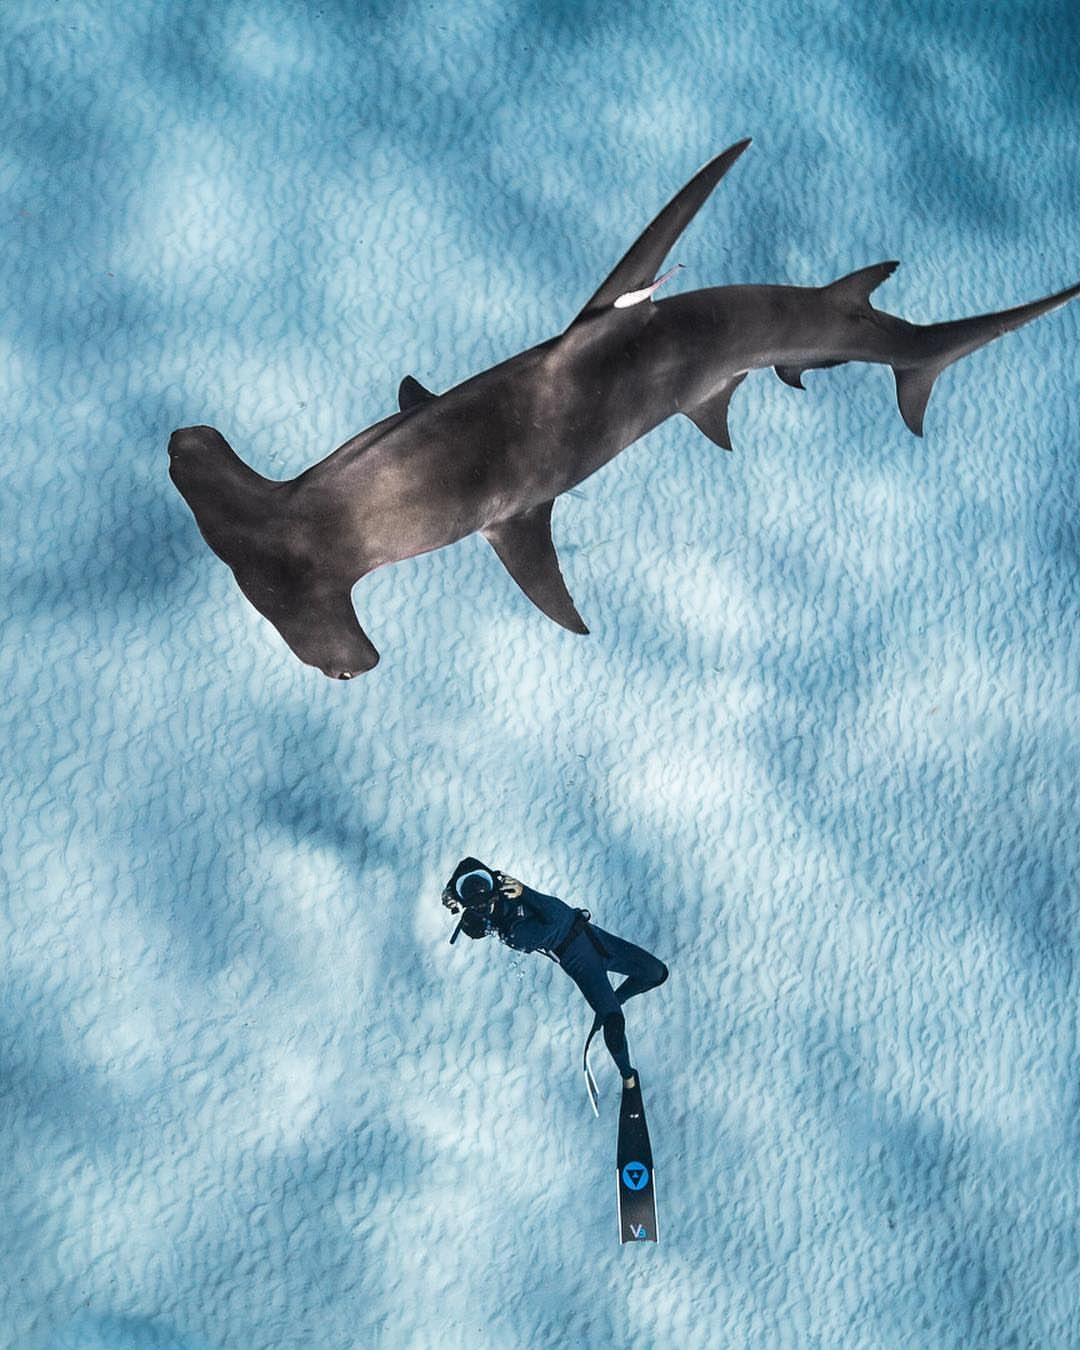 Astonishing Underwater Photography By Andre Musgrove Underwater Photography Underwater Ocean Photography